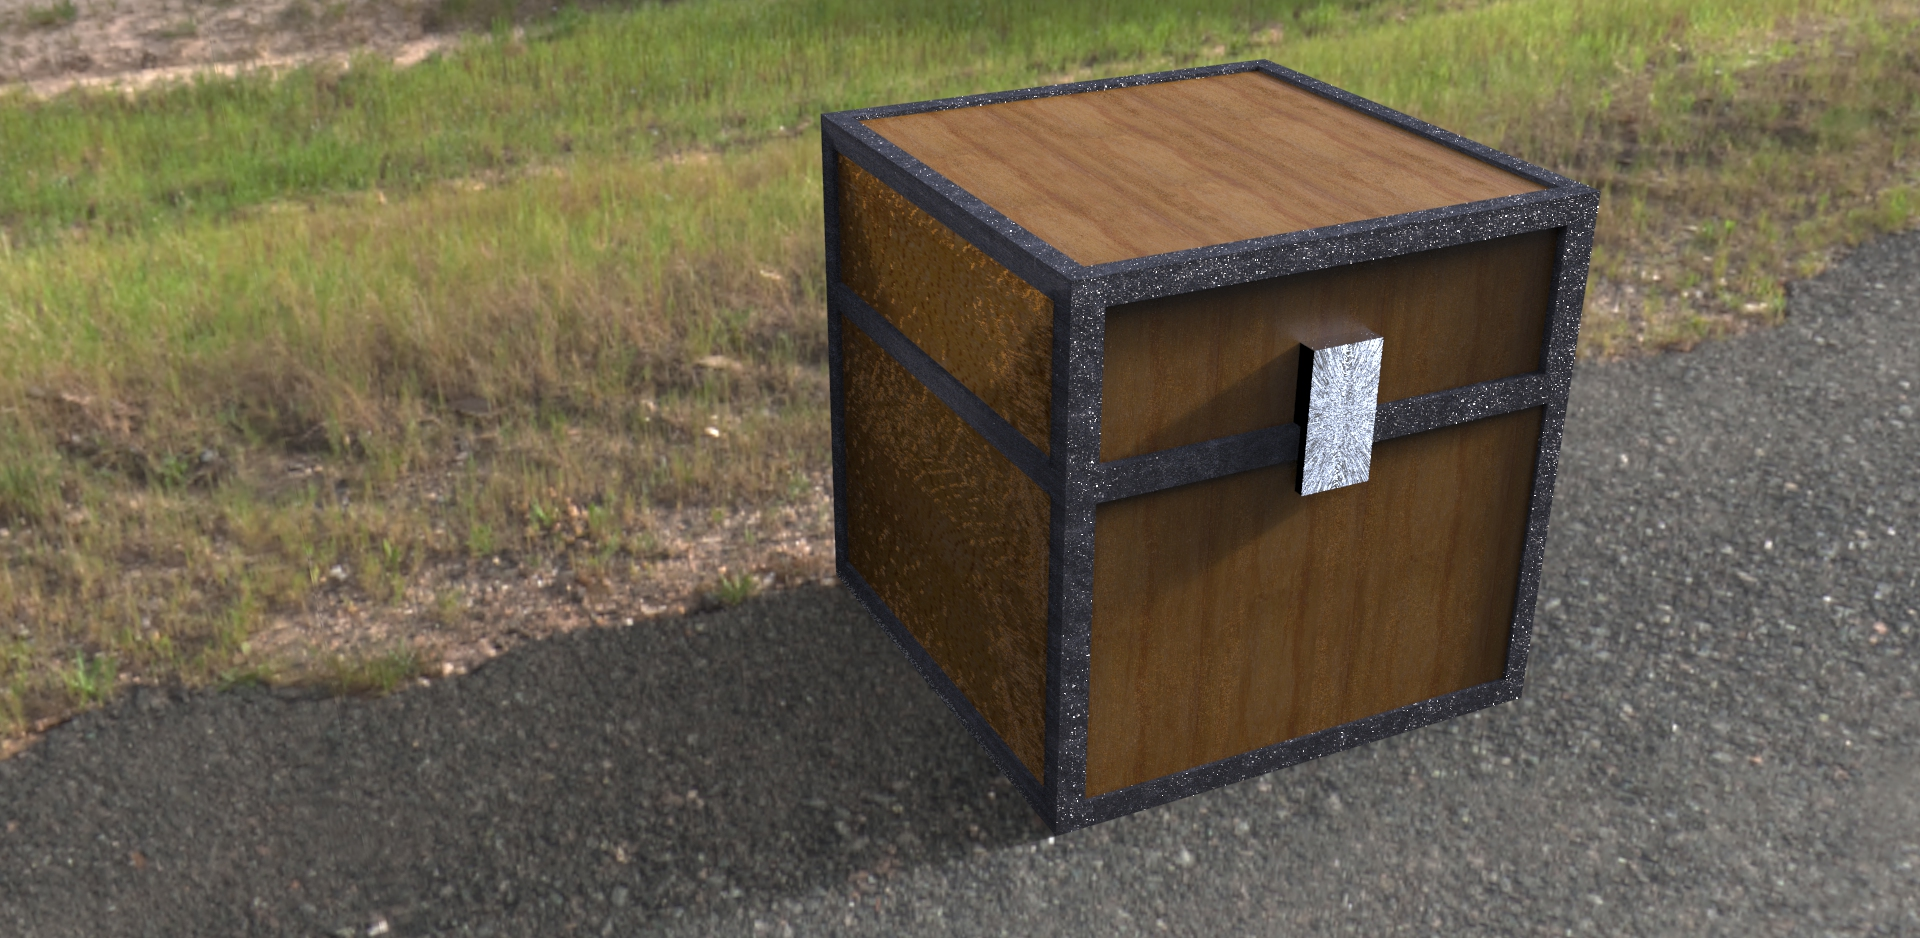 real minecraft chest by Bull3tModz on DeviantArt